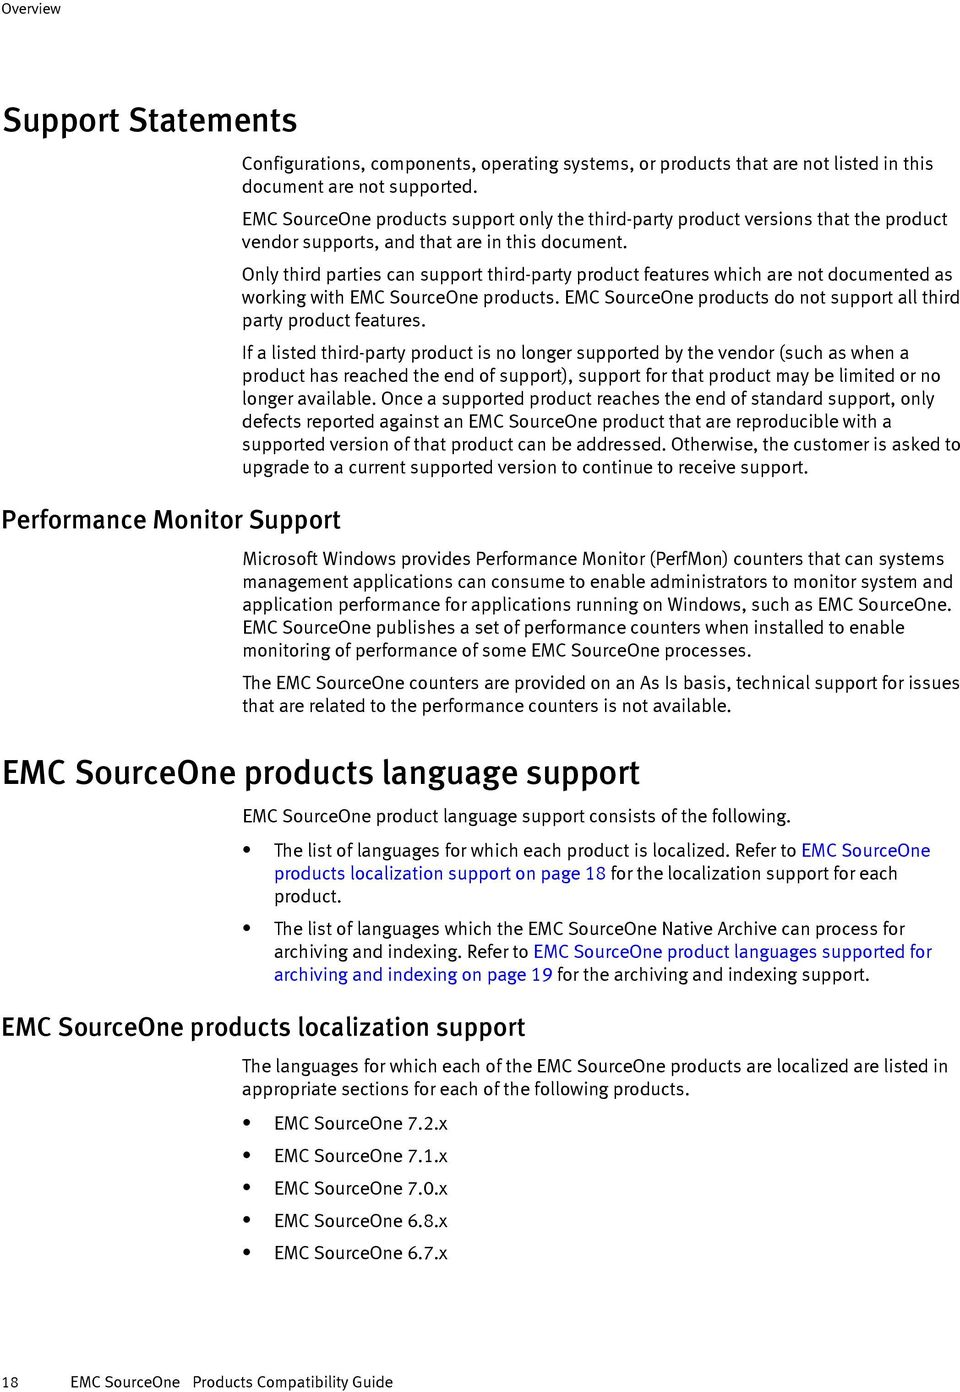 Only third parties can support third-party product features which are not documented as working with EMC SourceOne products. EMC SourceOne products do not support all third party product features.